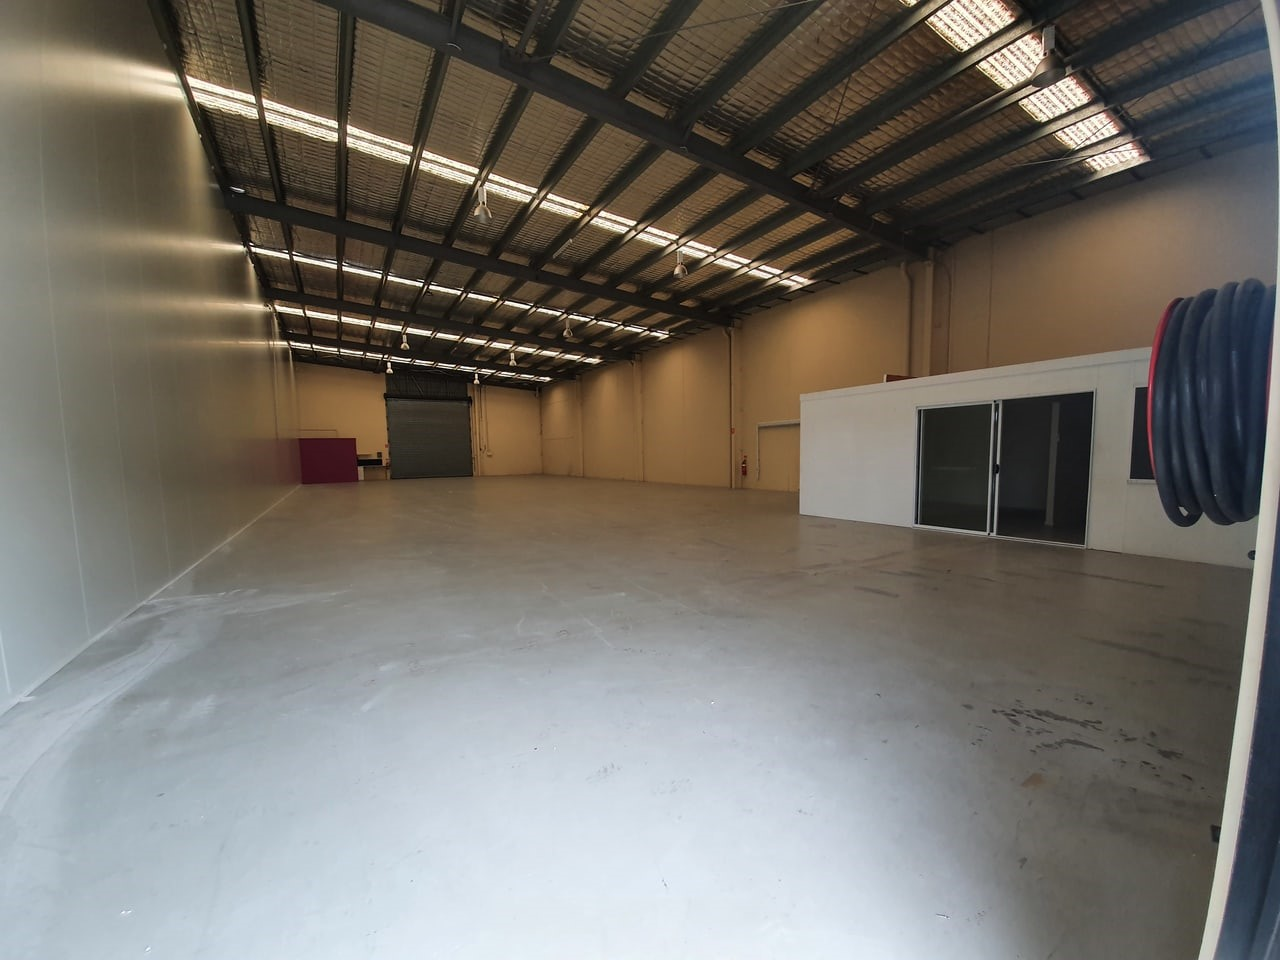 37 Lear Jet Caboolture 2